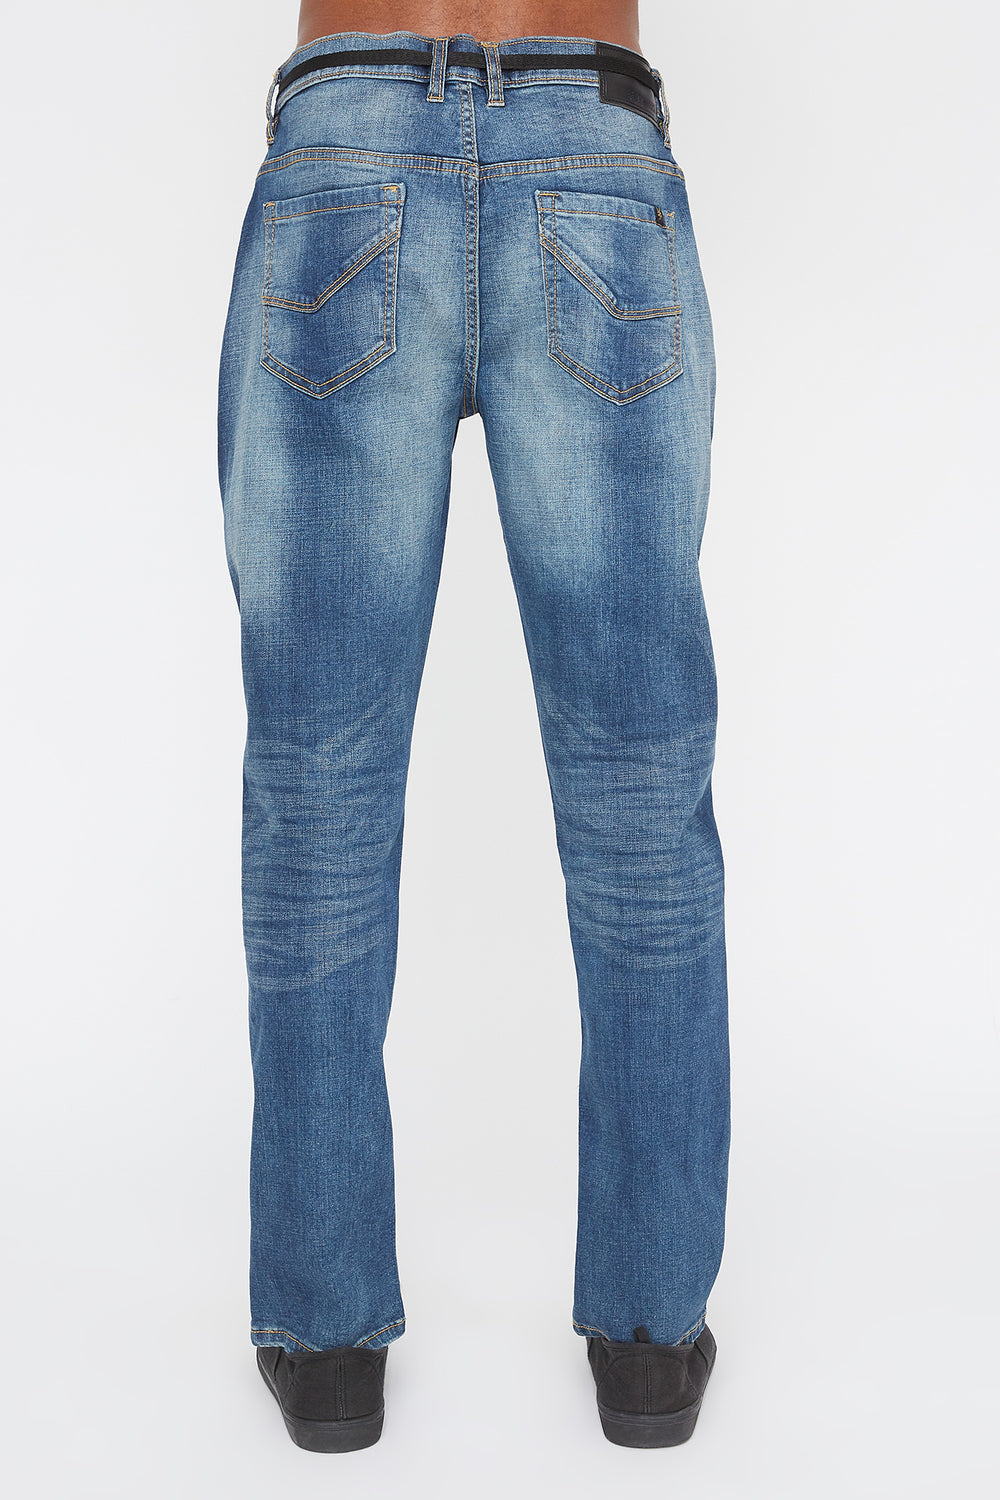 Zoo York Mens Stretch Slim Jeans Medium Blue